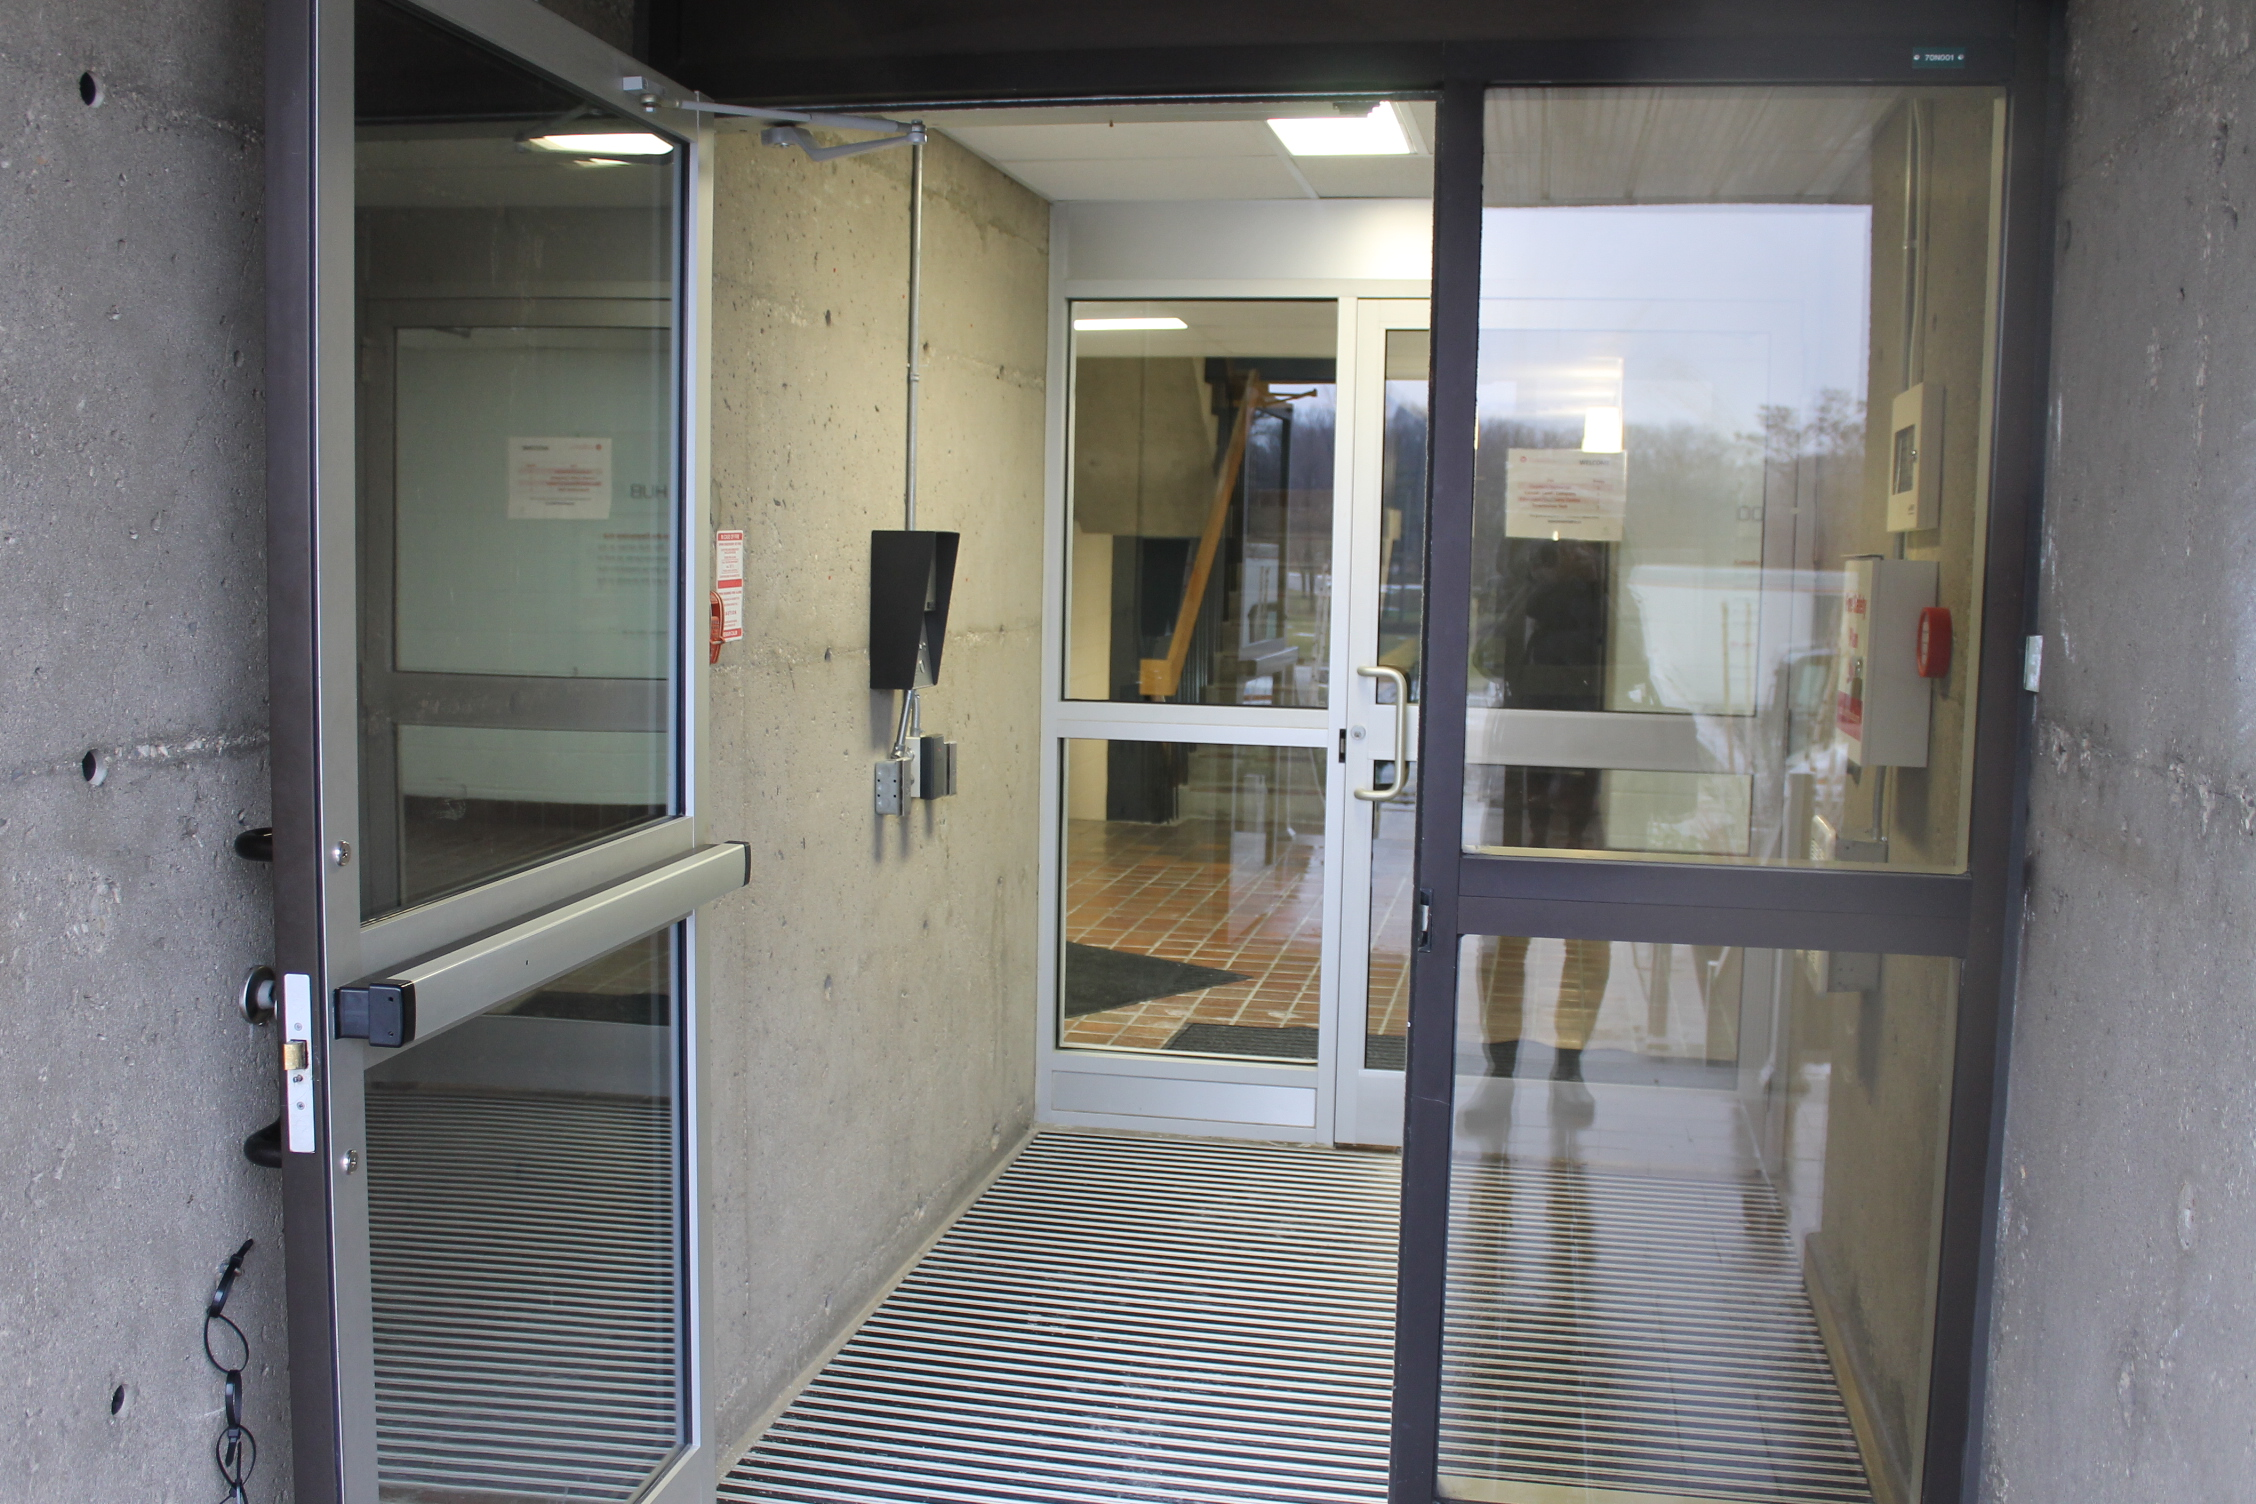 Picture of the accessible front door of the building